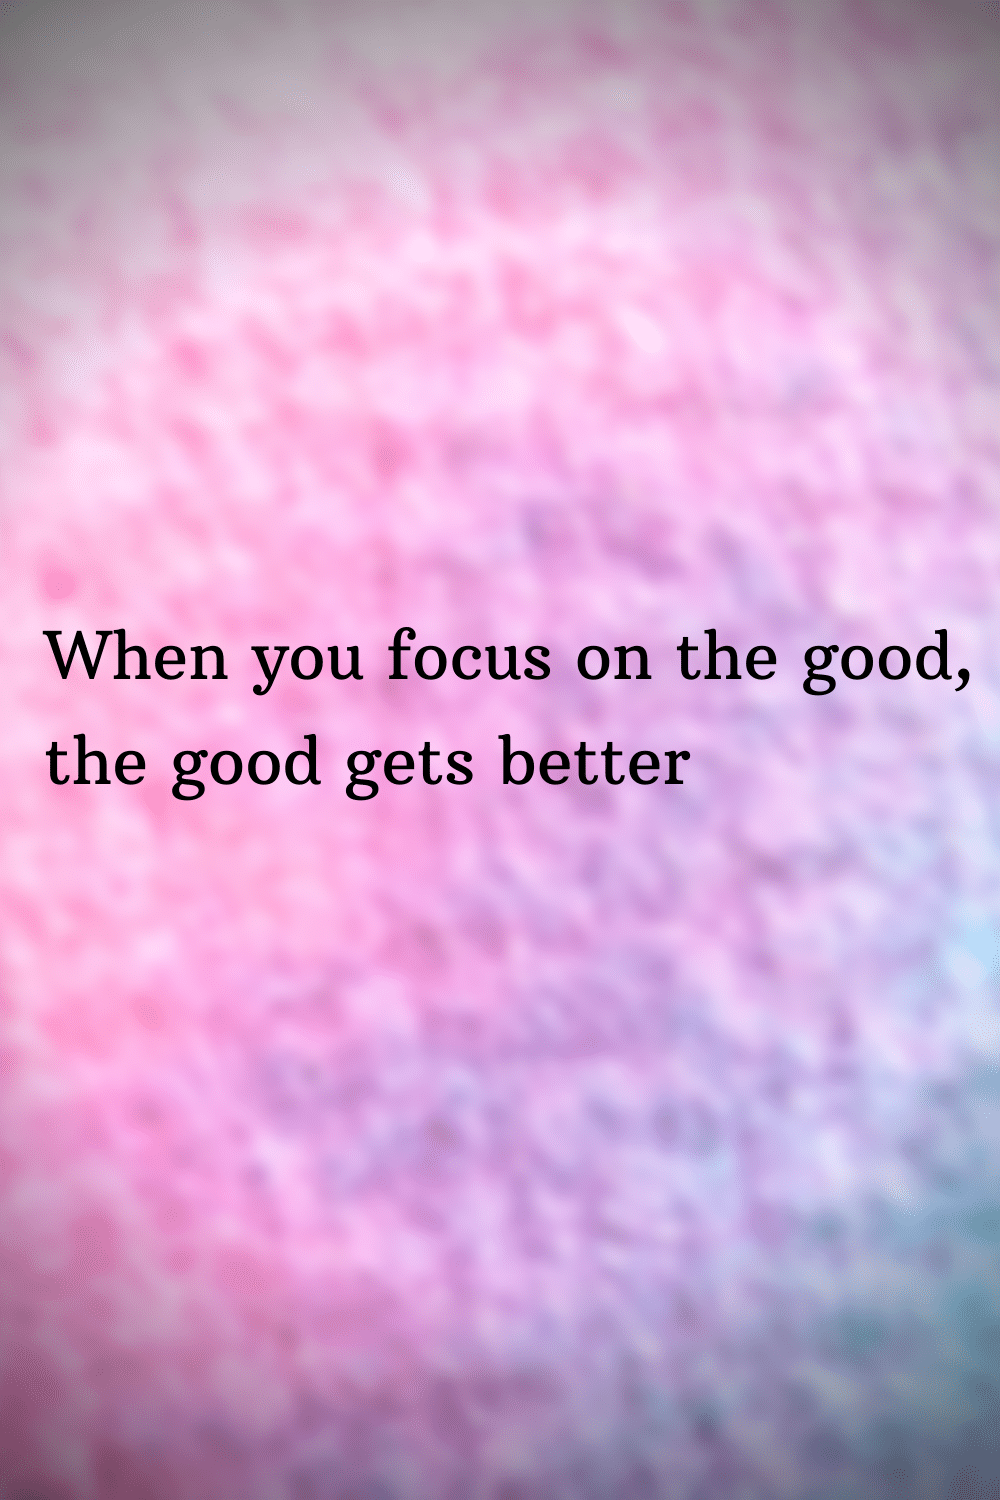 when you focus on the good, the good gets better